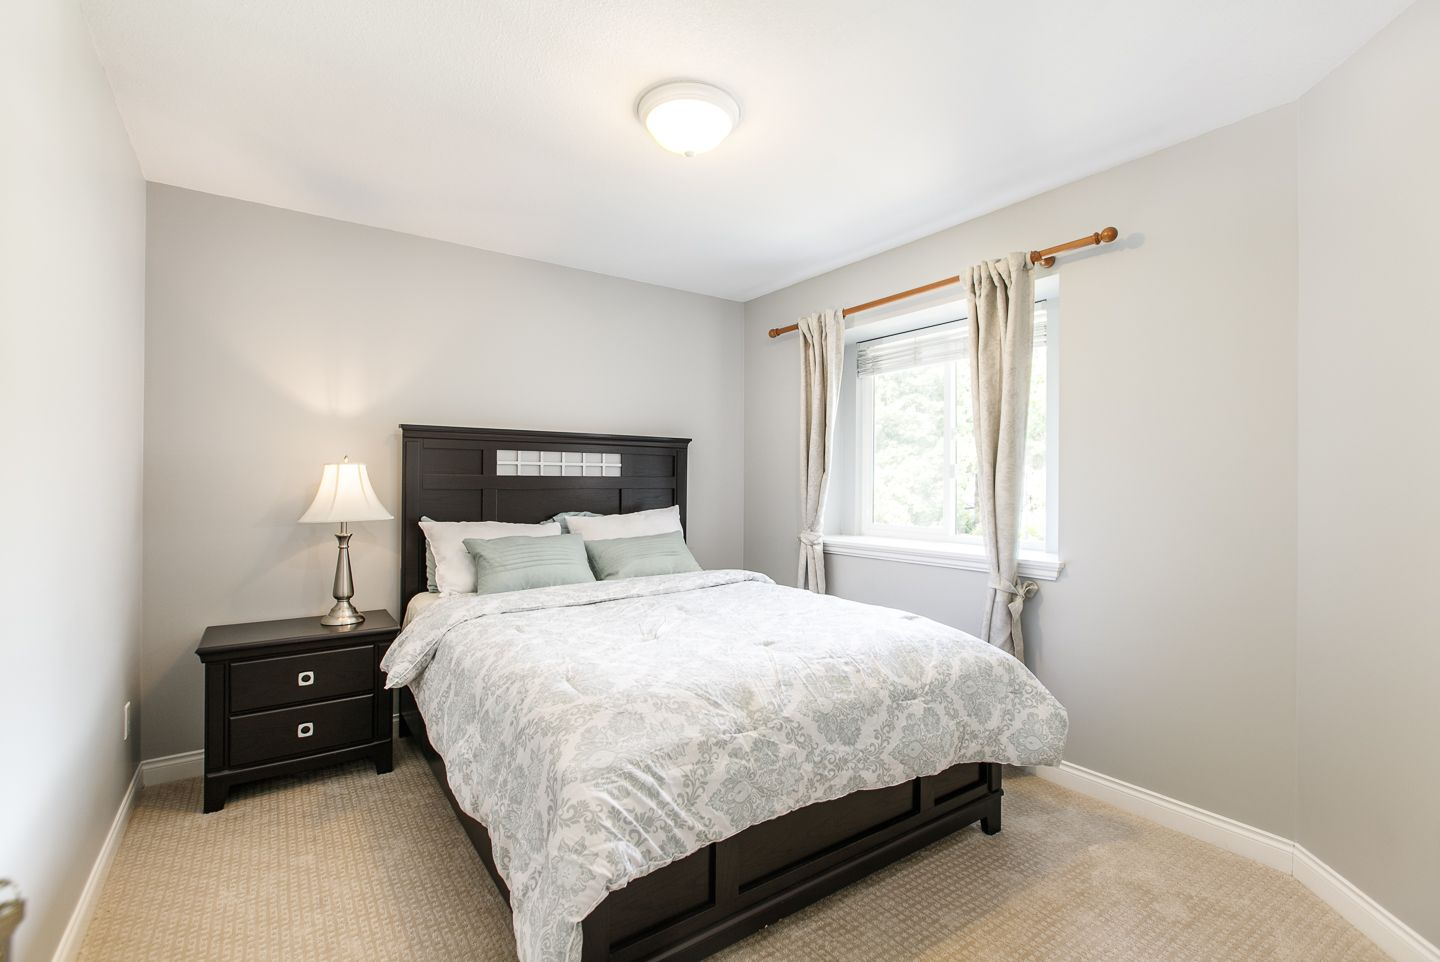 Photo 11: Photos: 14135 23A STREET in SOUTH SURREY WHITE ROCK: Sunnyside Park Surrey House for sale (South Surrey White Rock)  : MLS®# R2349560